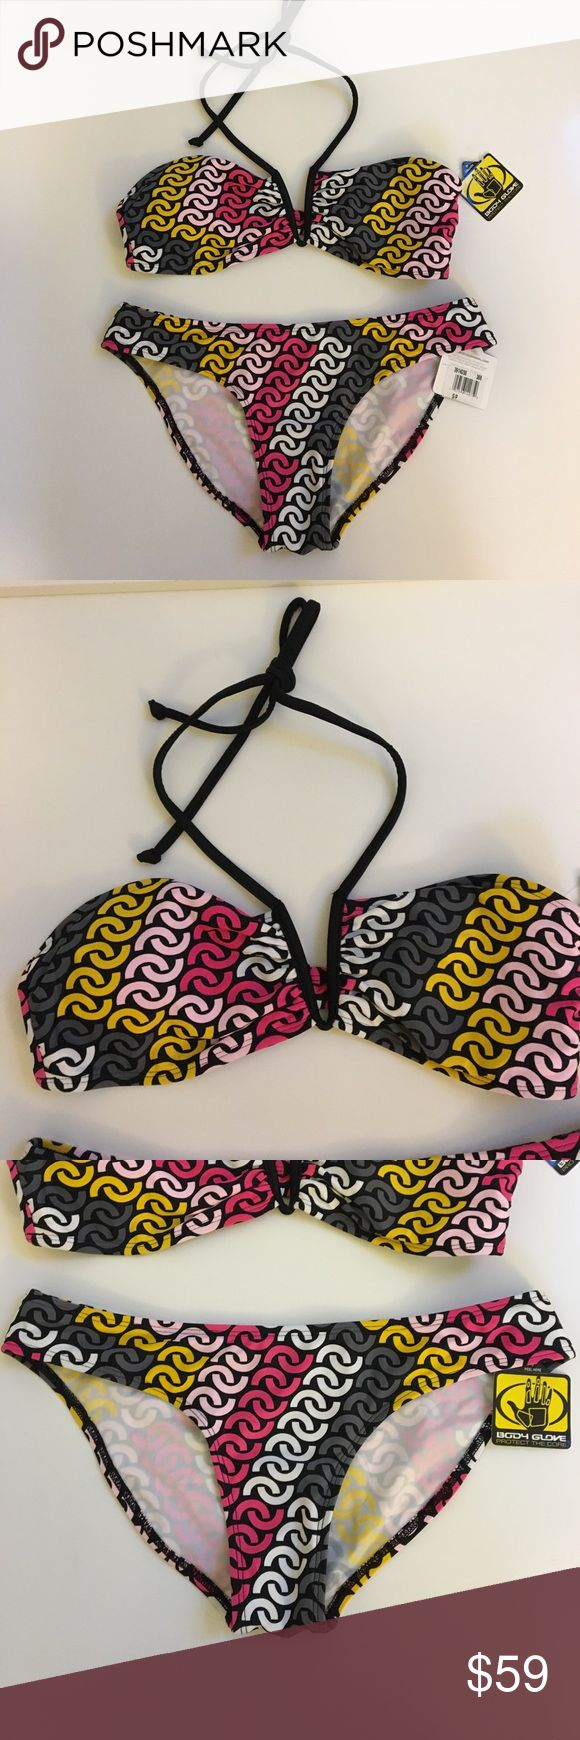 { Body Glove } Bikini Body Glove bikini top has wire at v and sides, light pads that can be removed, latch back and tie around neck. Bottom is slip on and off with medium coverage. Such a fun cute pattern. Body Glove Swim Bikinis